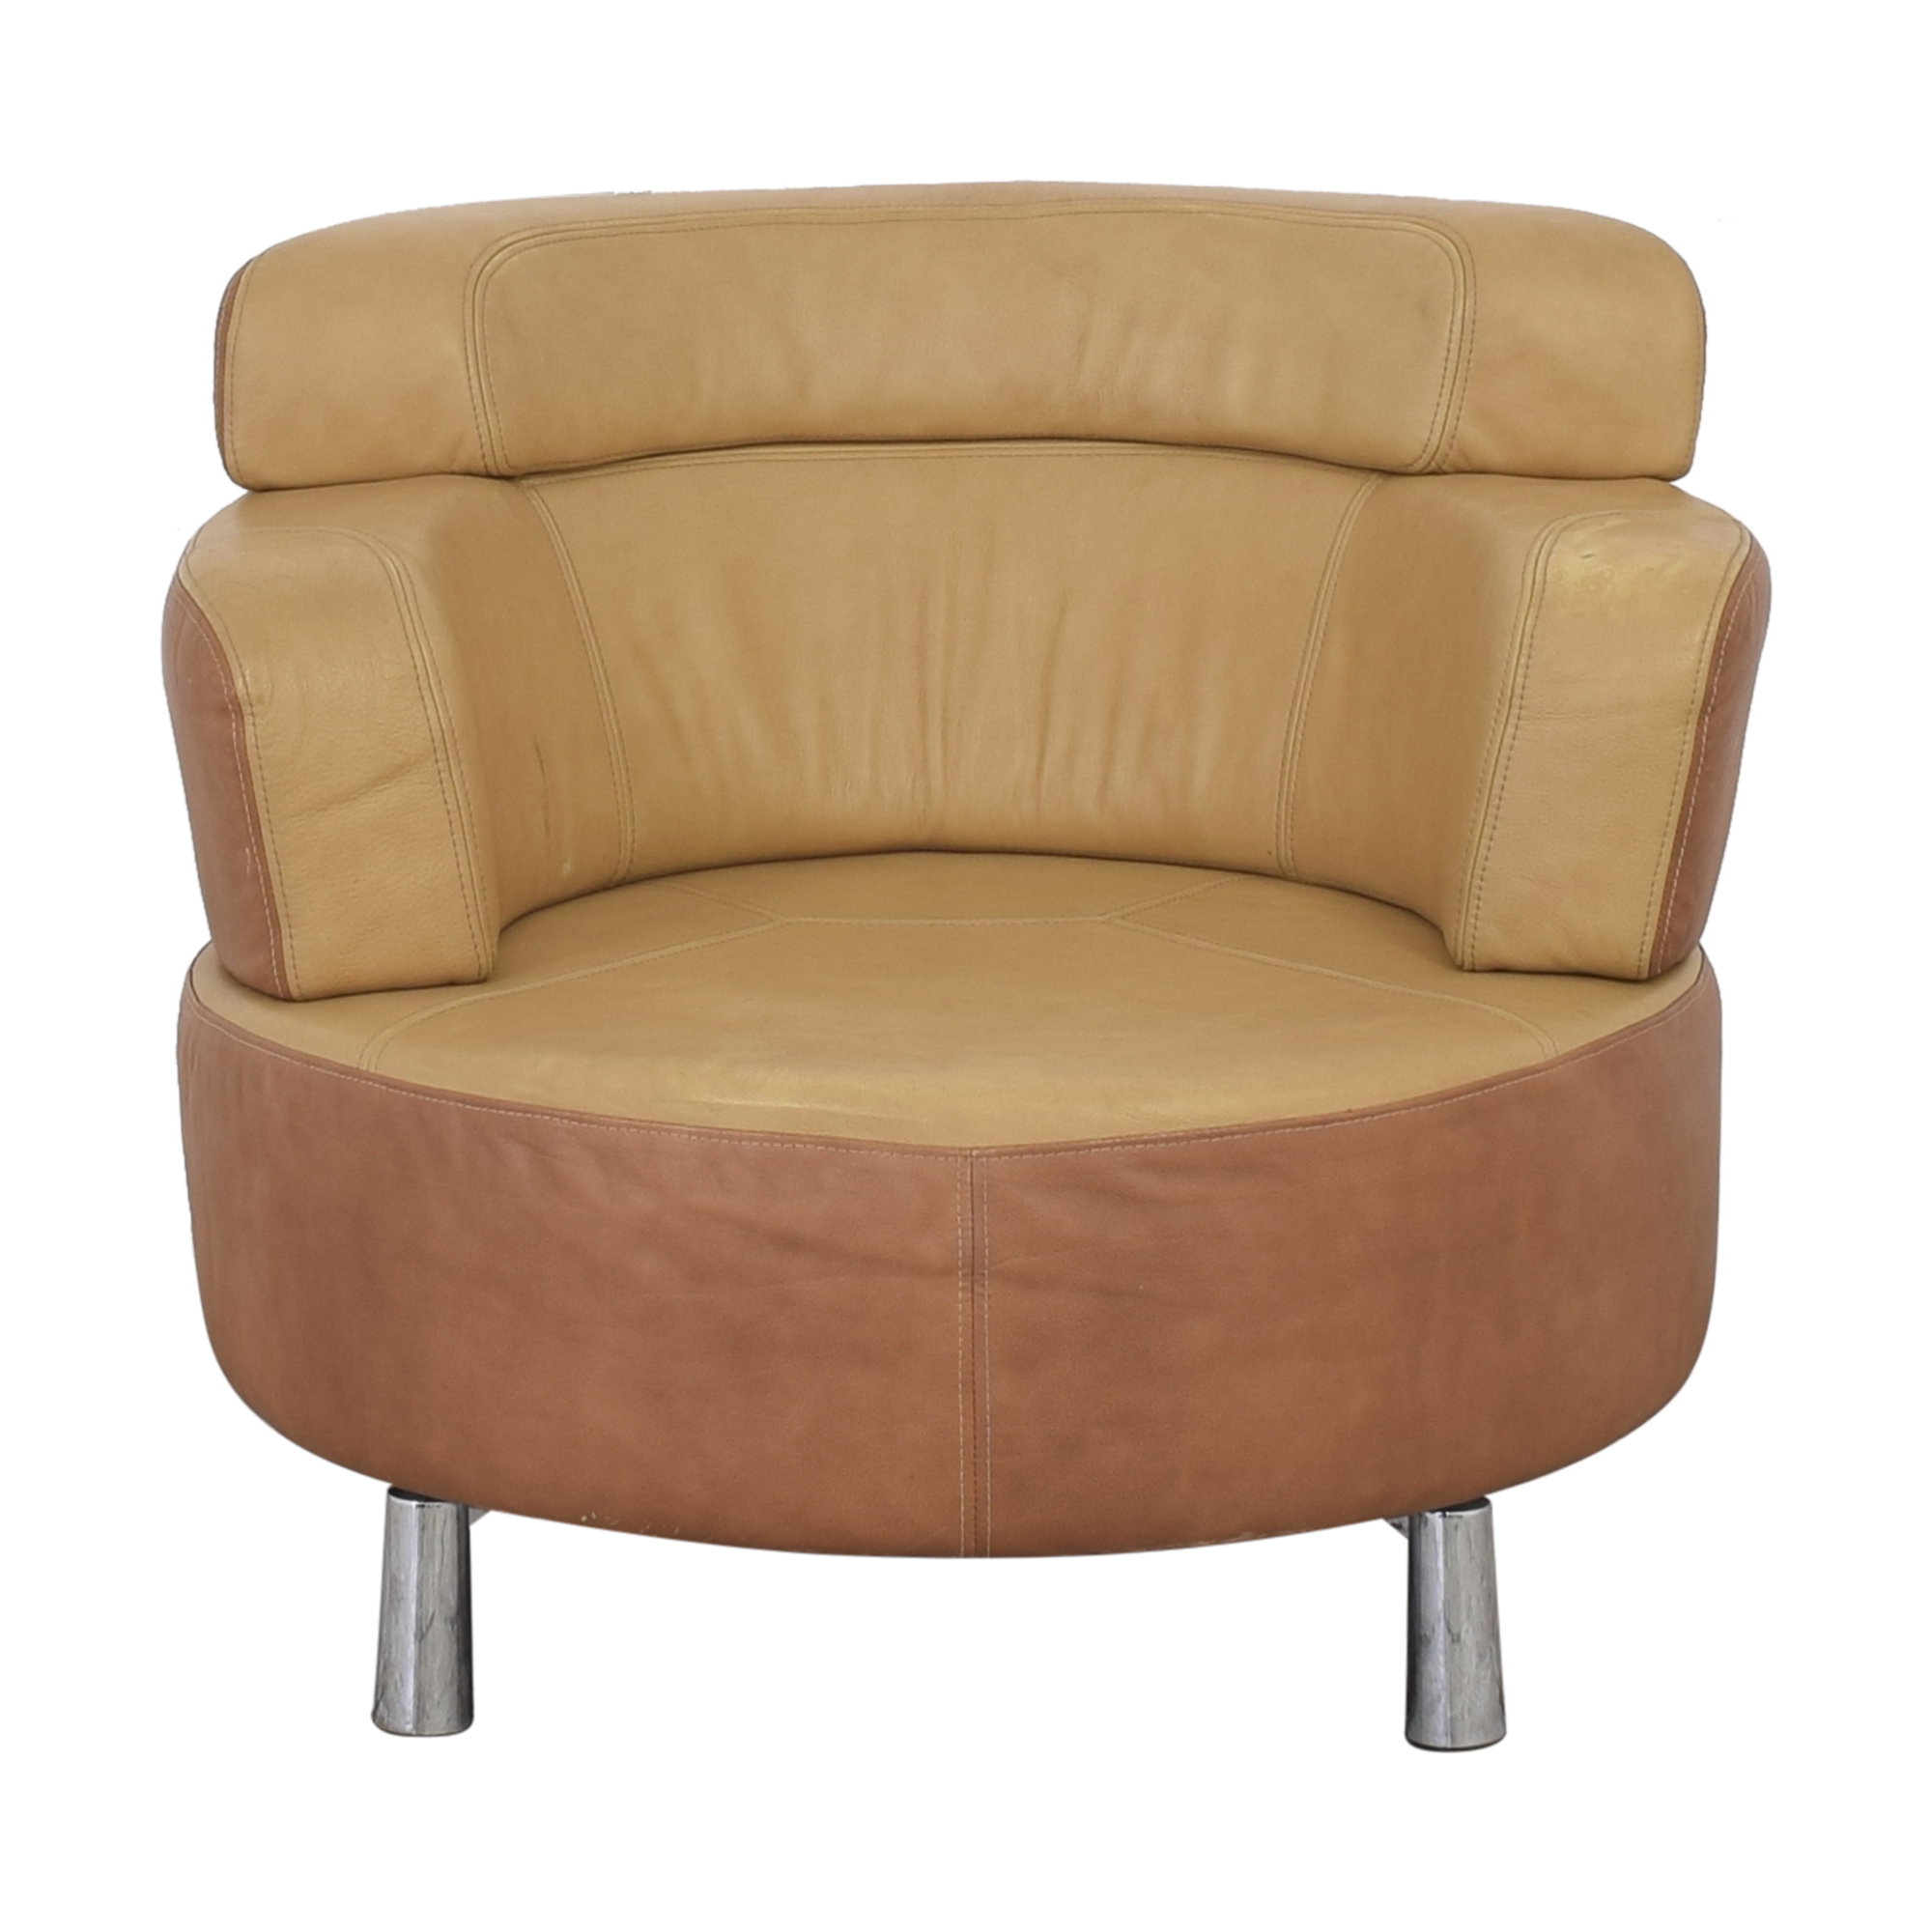 Barrel Back Accent Chair price